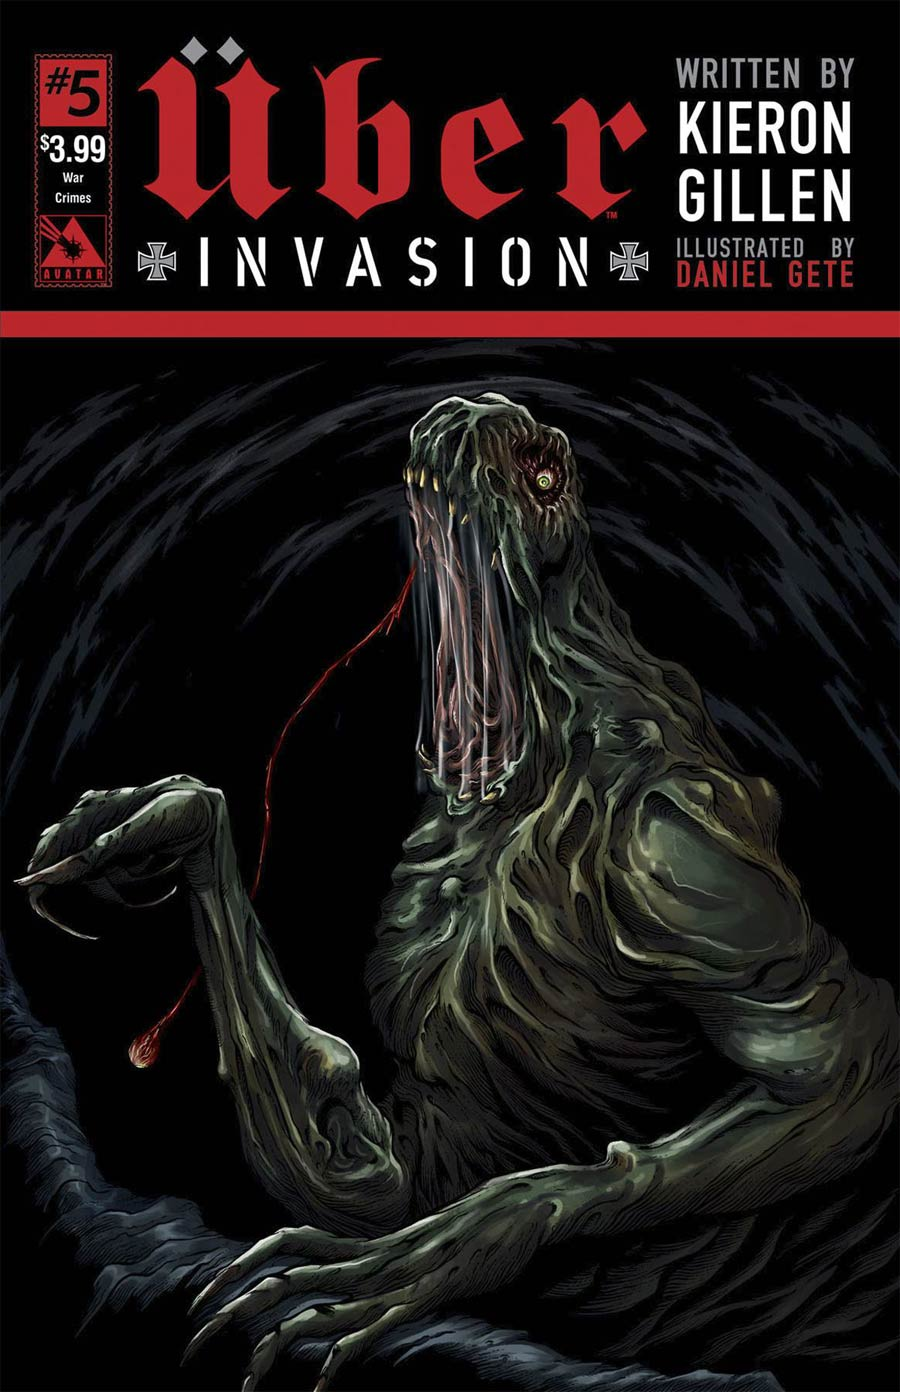 Uber Invasion #5 Cover C War Crimes Cover